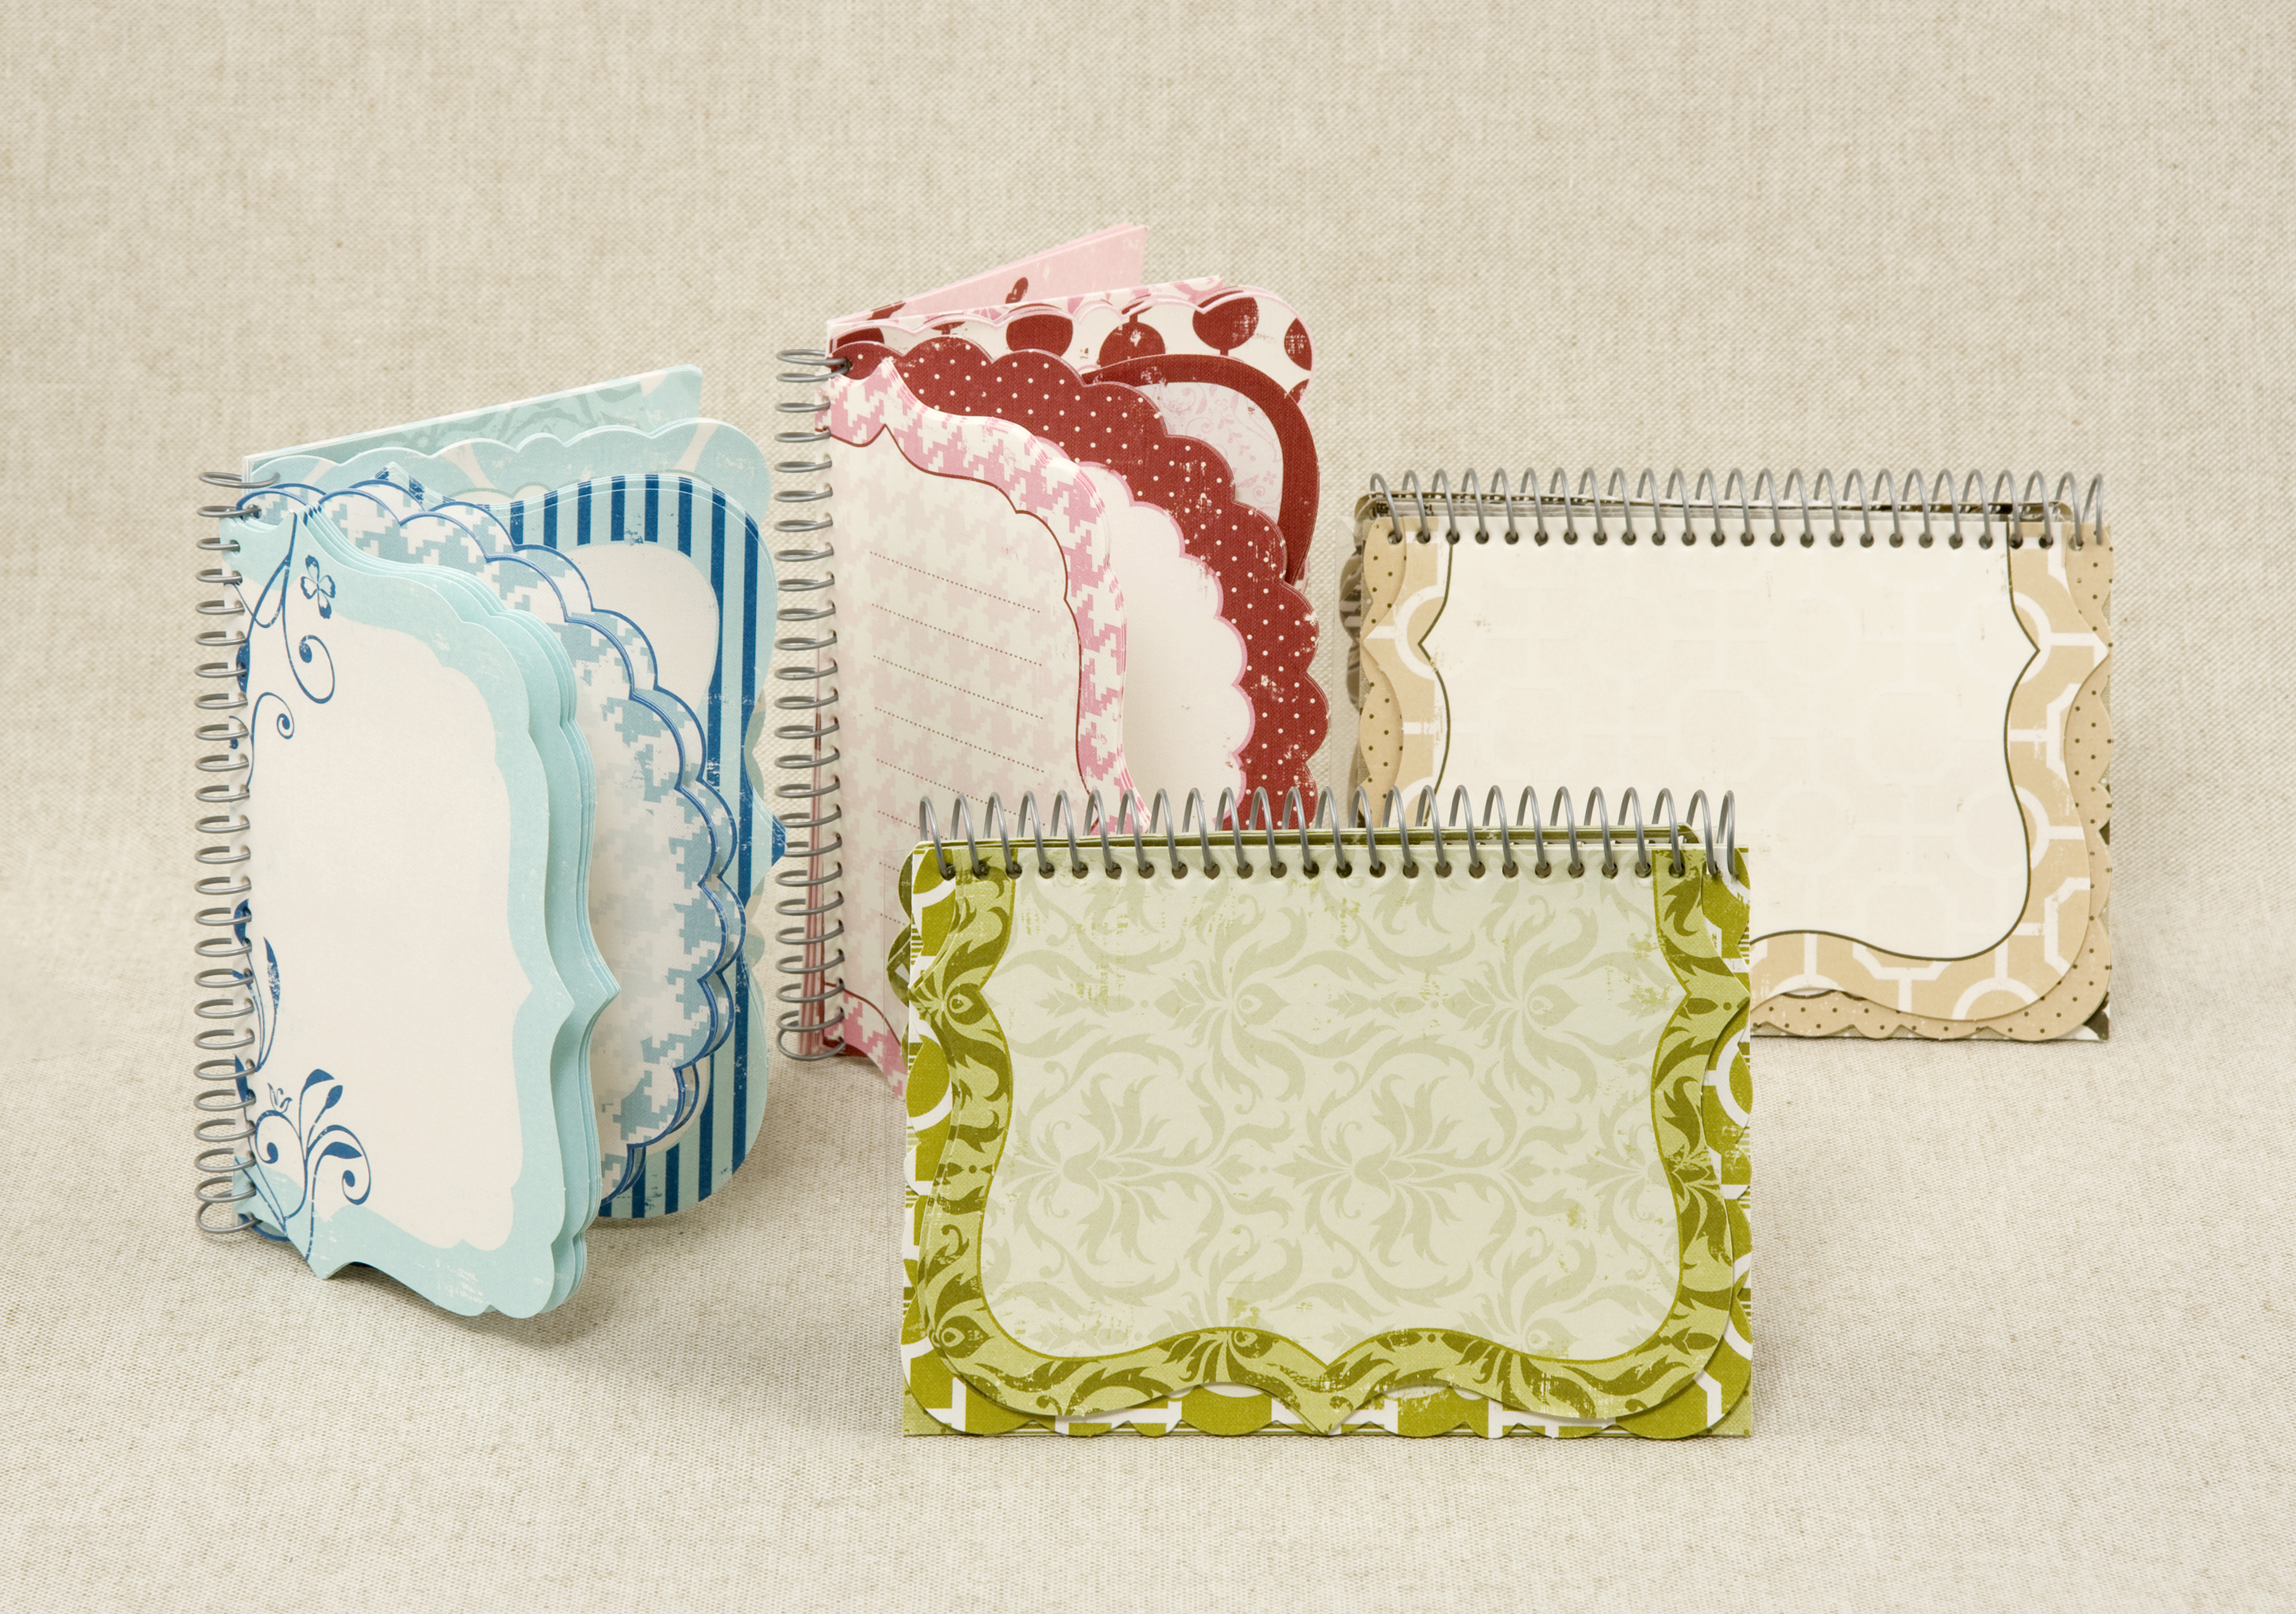 Paperie journaling books